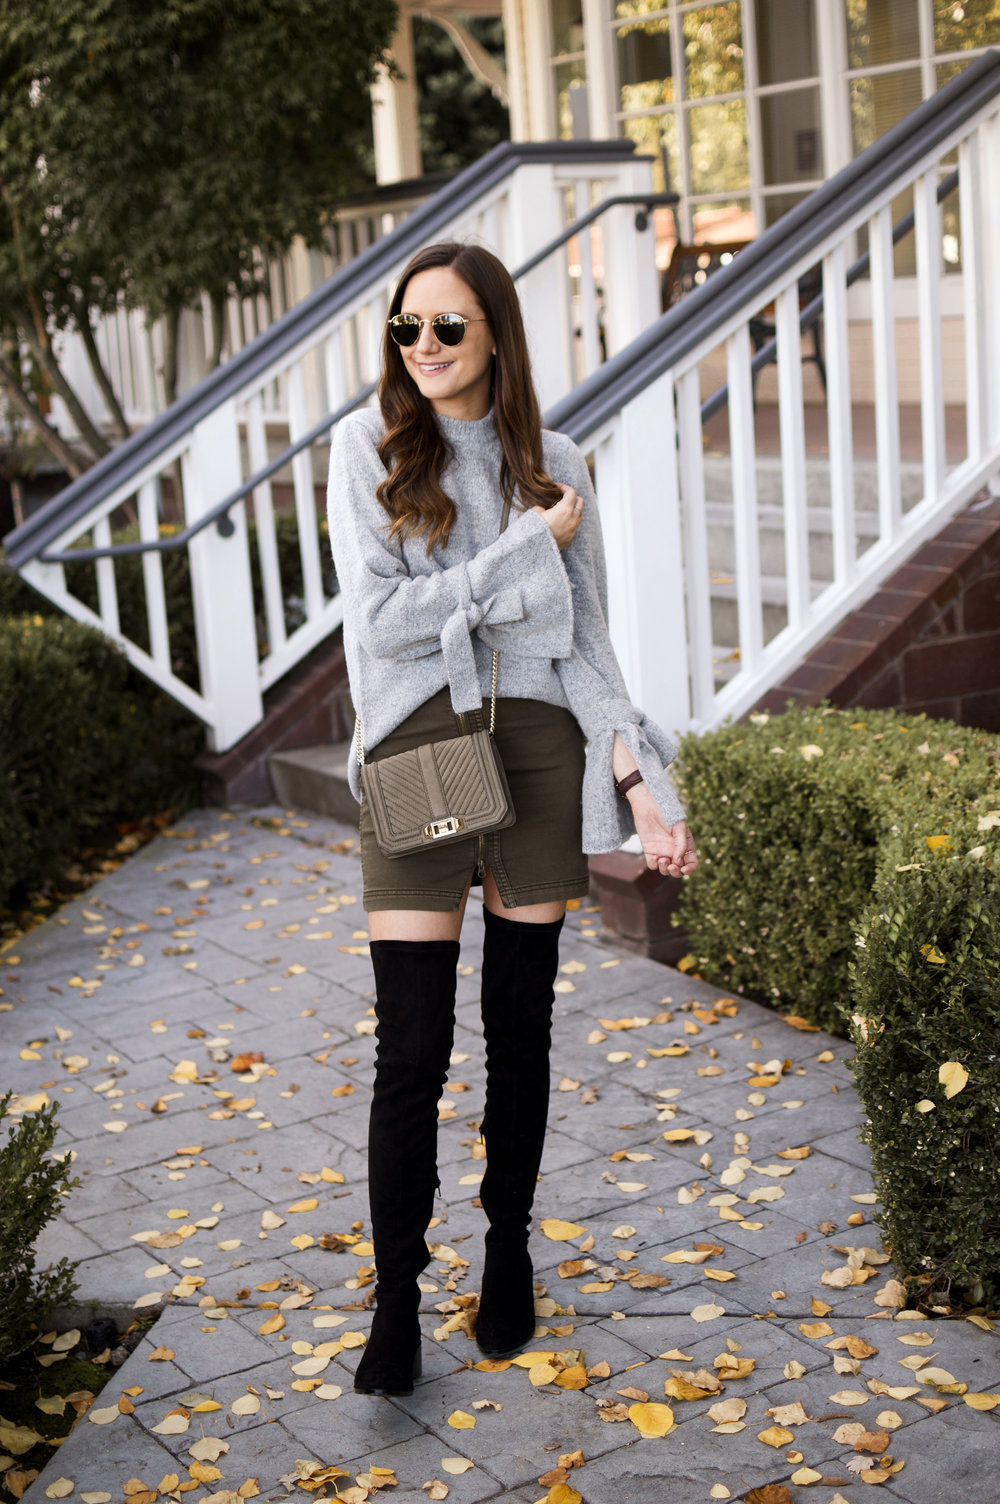 Shop the Look Below.  J.O.A Sweater  c/o Amazon|  Free People Skirt  |  Steve Madden Boots  | Rebecca Minkoff Bag—almost exact one  here  |  Ray-Ban Sunglasses